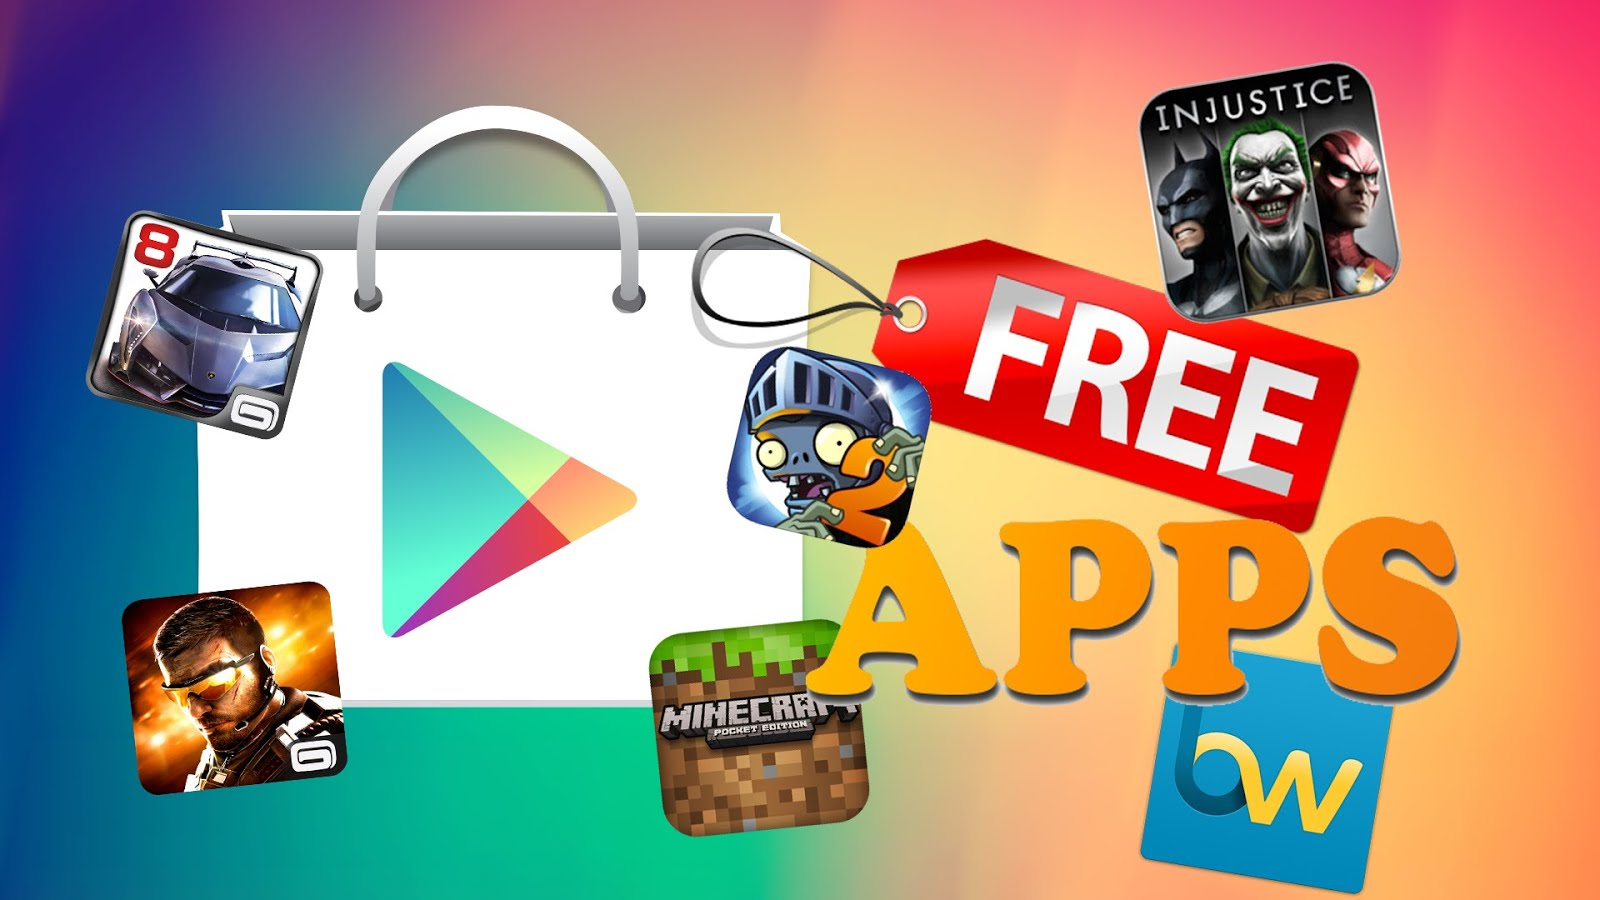 NEW! Free Android Apps!